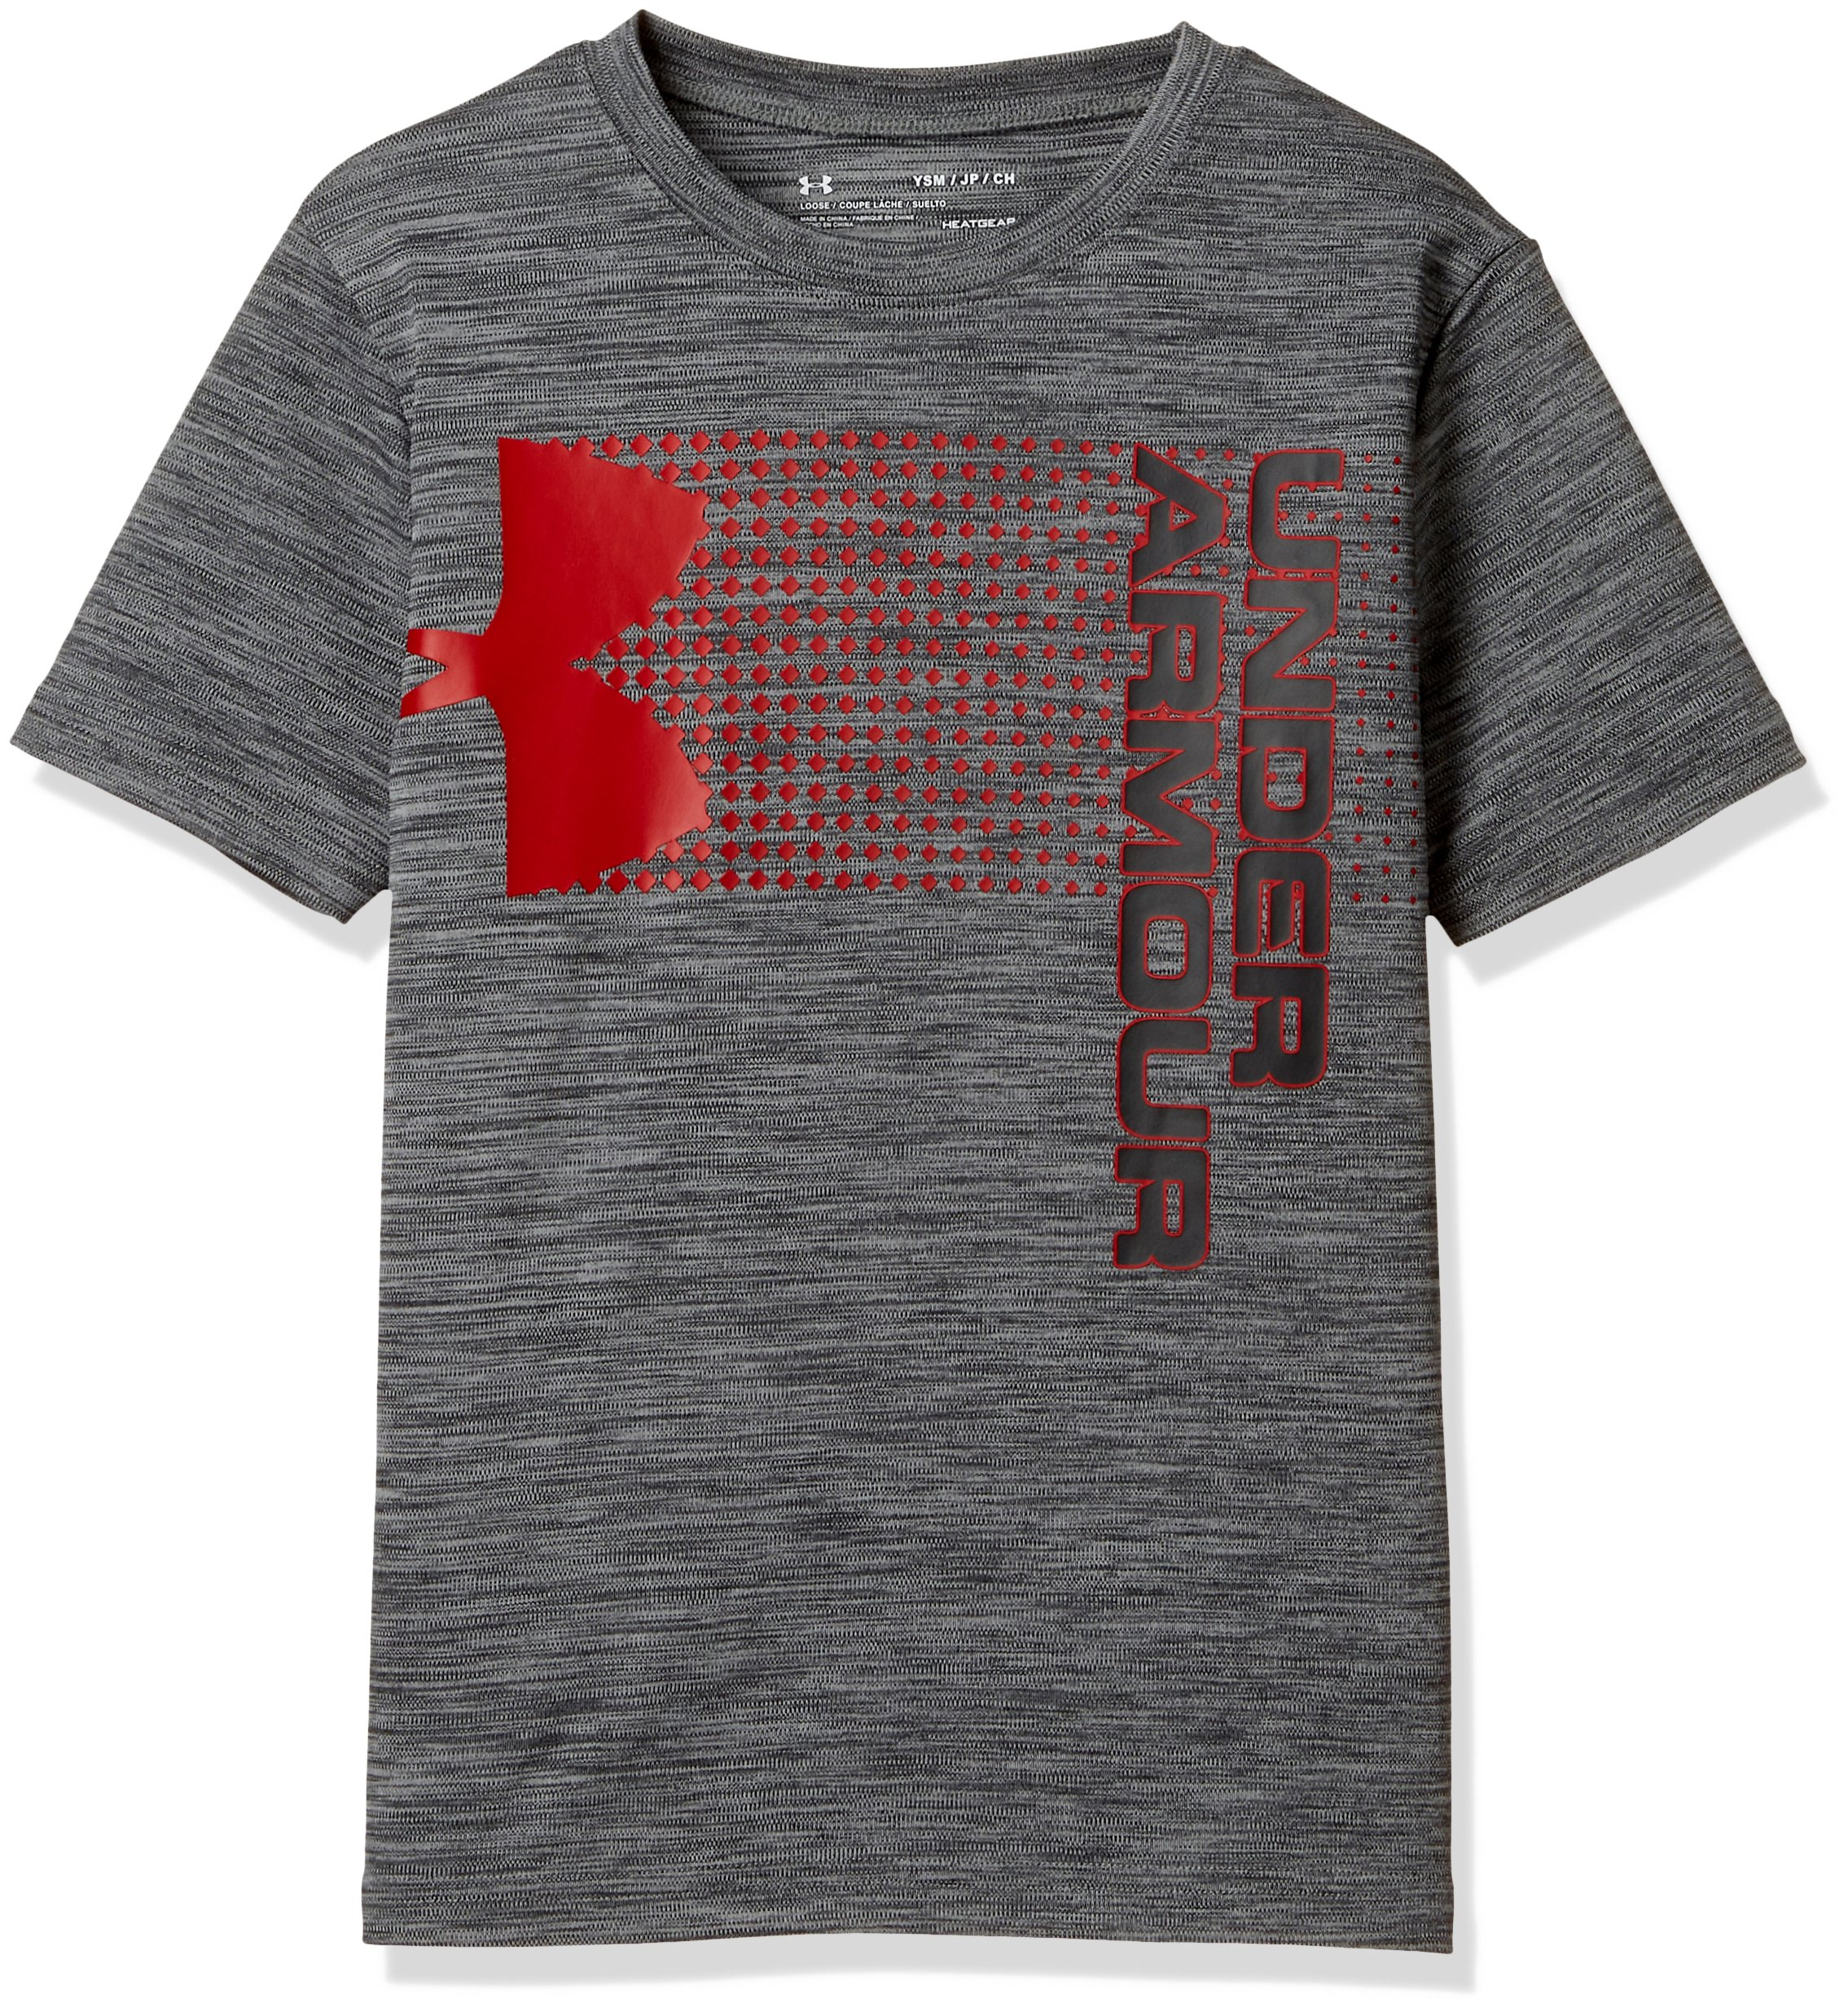 Under Armour Kids Boy's Crossfade Tee (Big Kids) Stealth Gray/Red/Stealth Gray Small by Under Armour (Image #1)